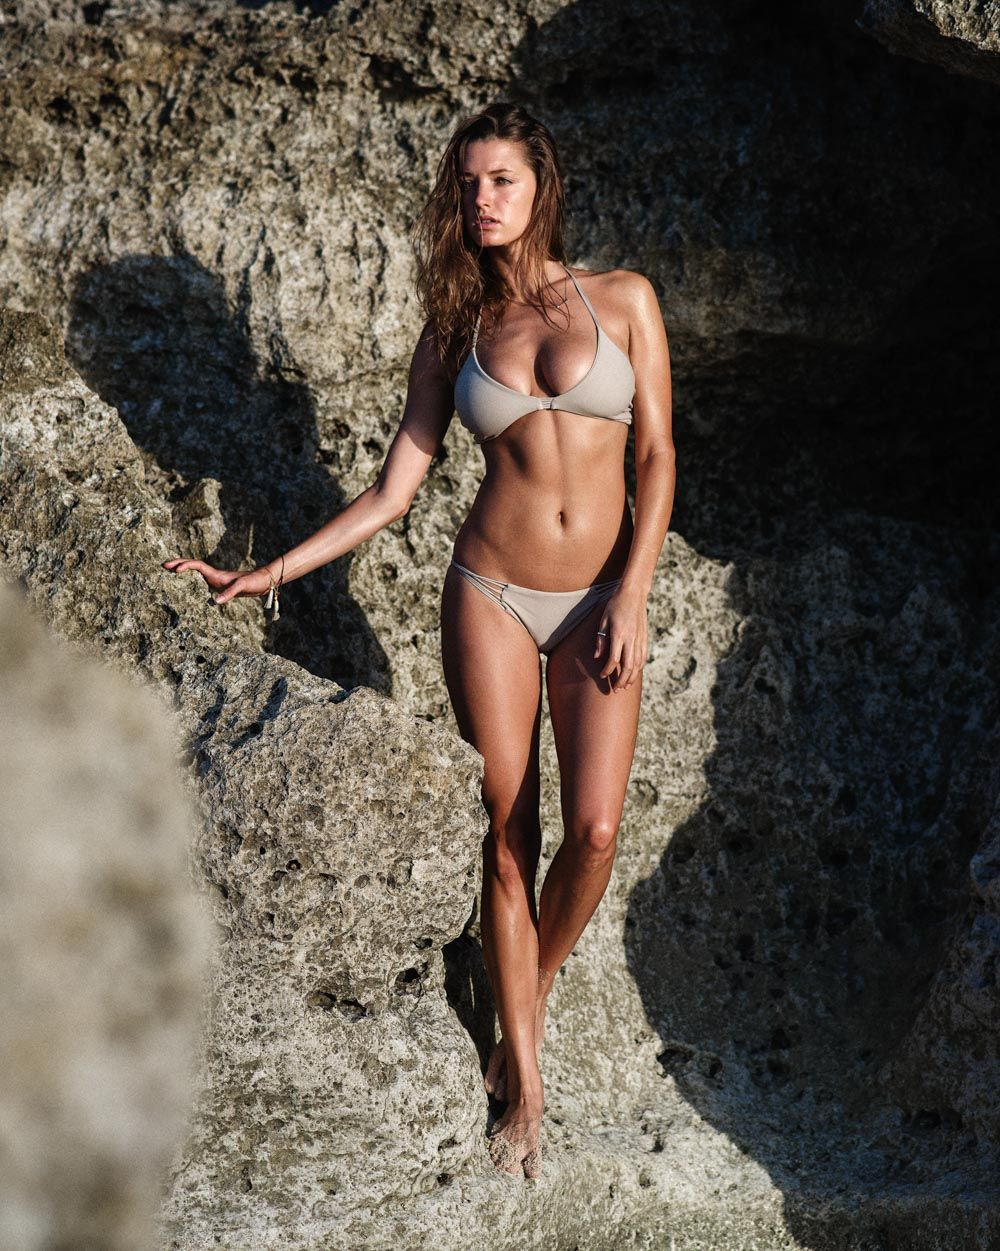 Alyssa arce nude posing beach naked (51 photo), Fappening Celebrity pictures